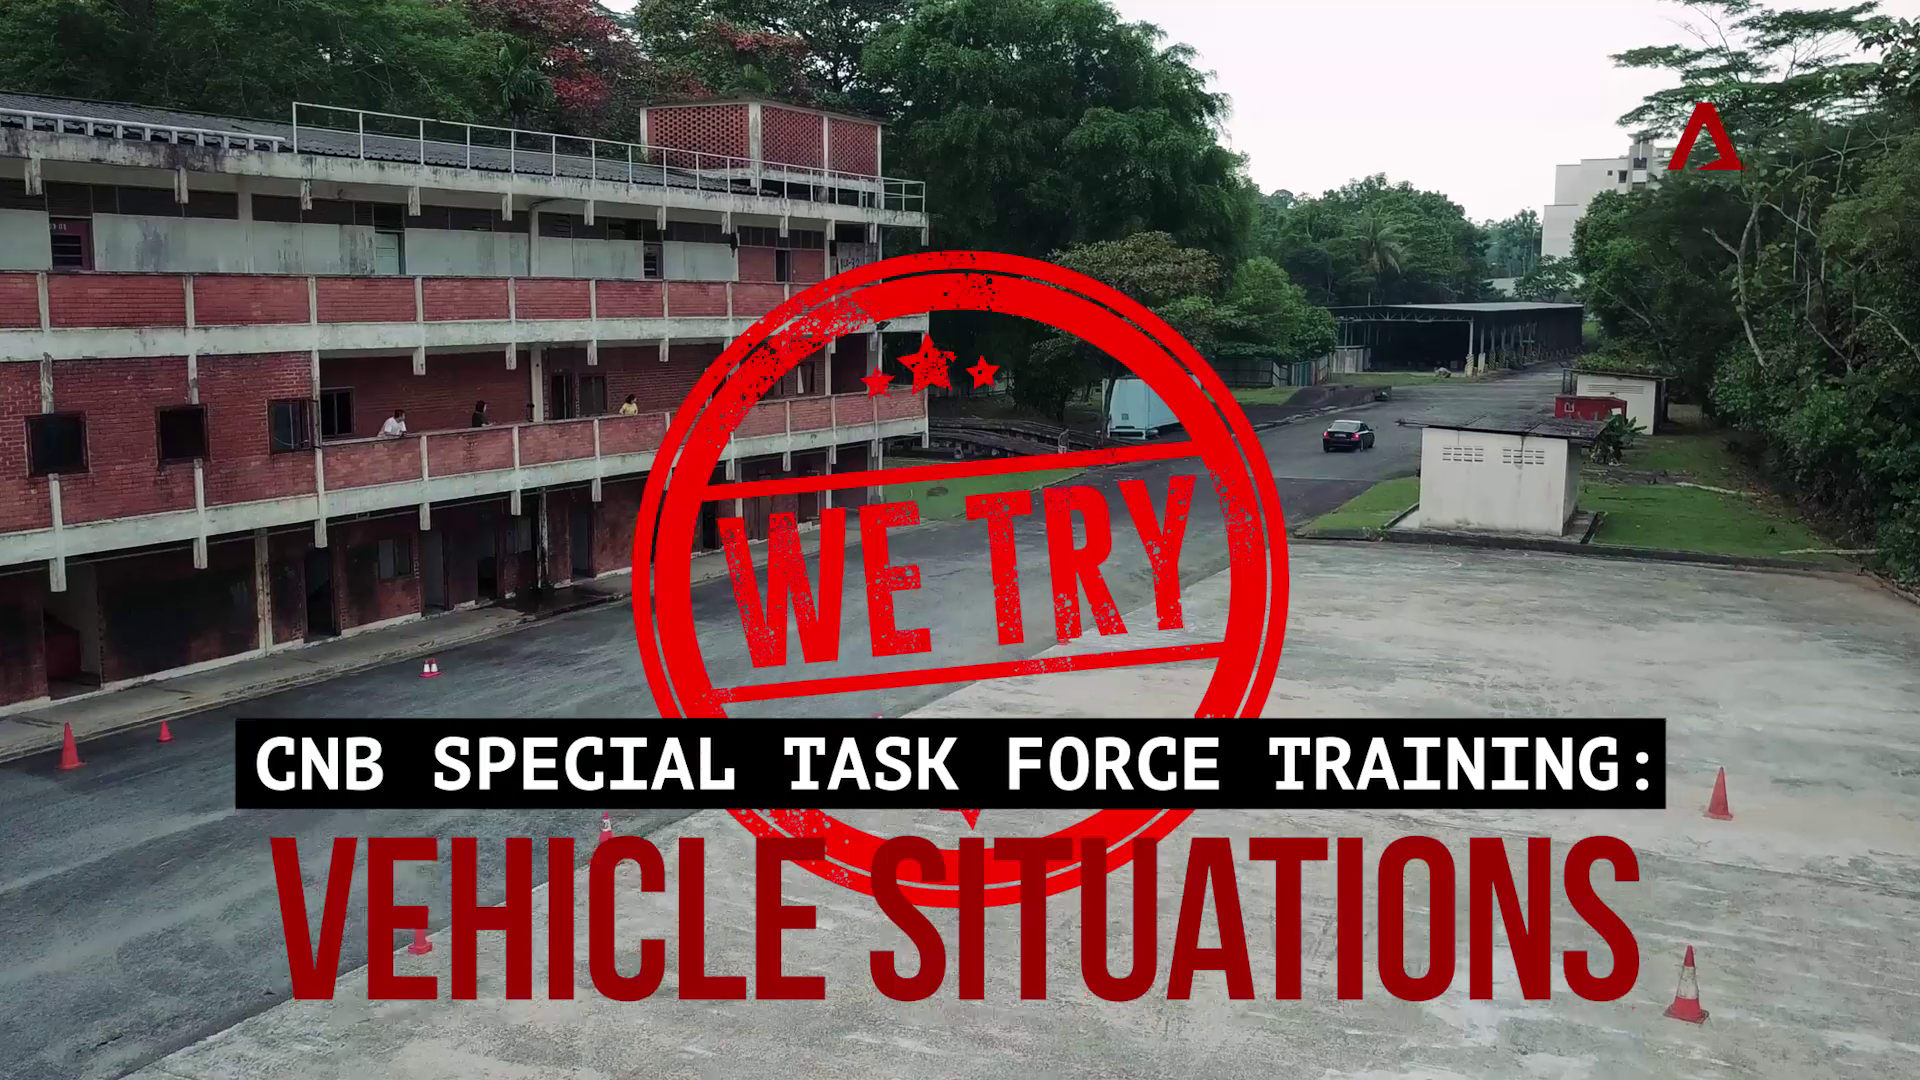 CNB Special Task Force training: Vehicular situations